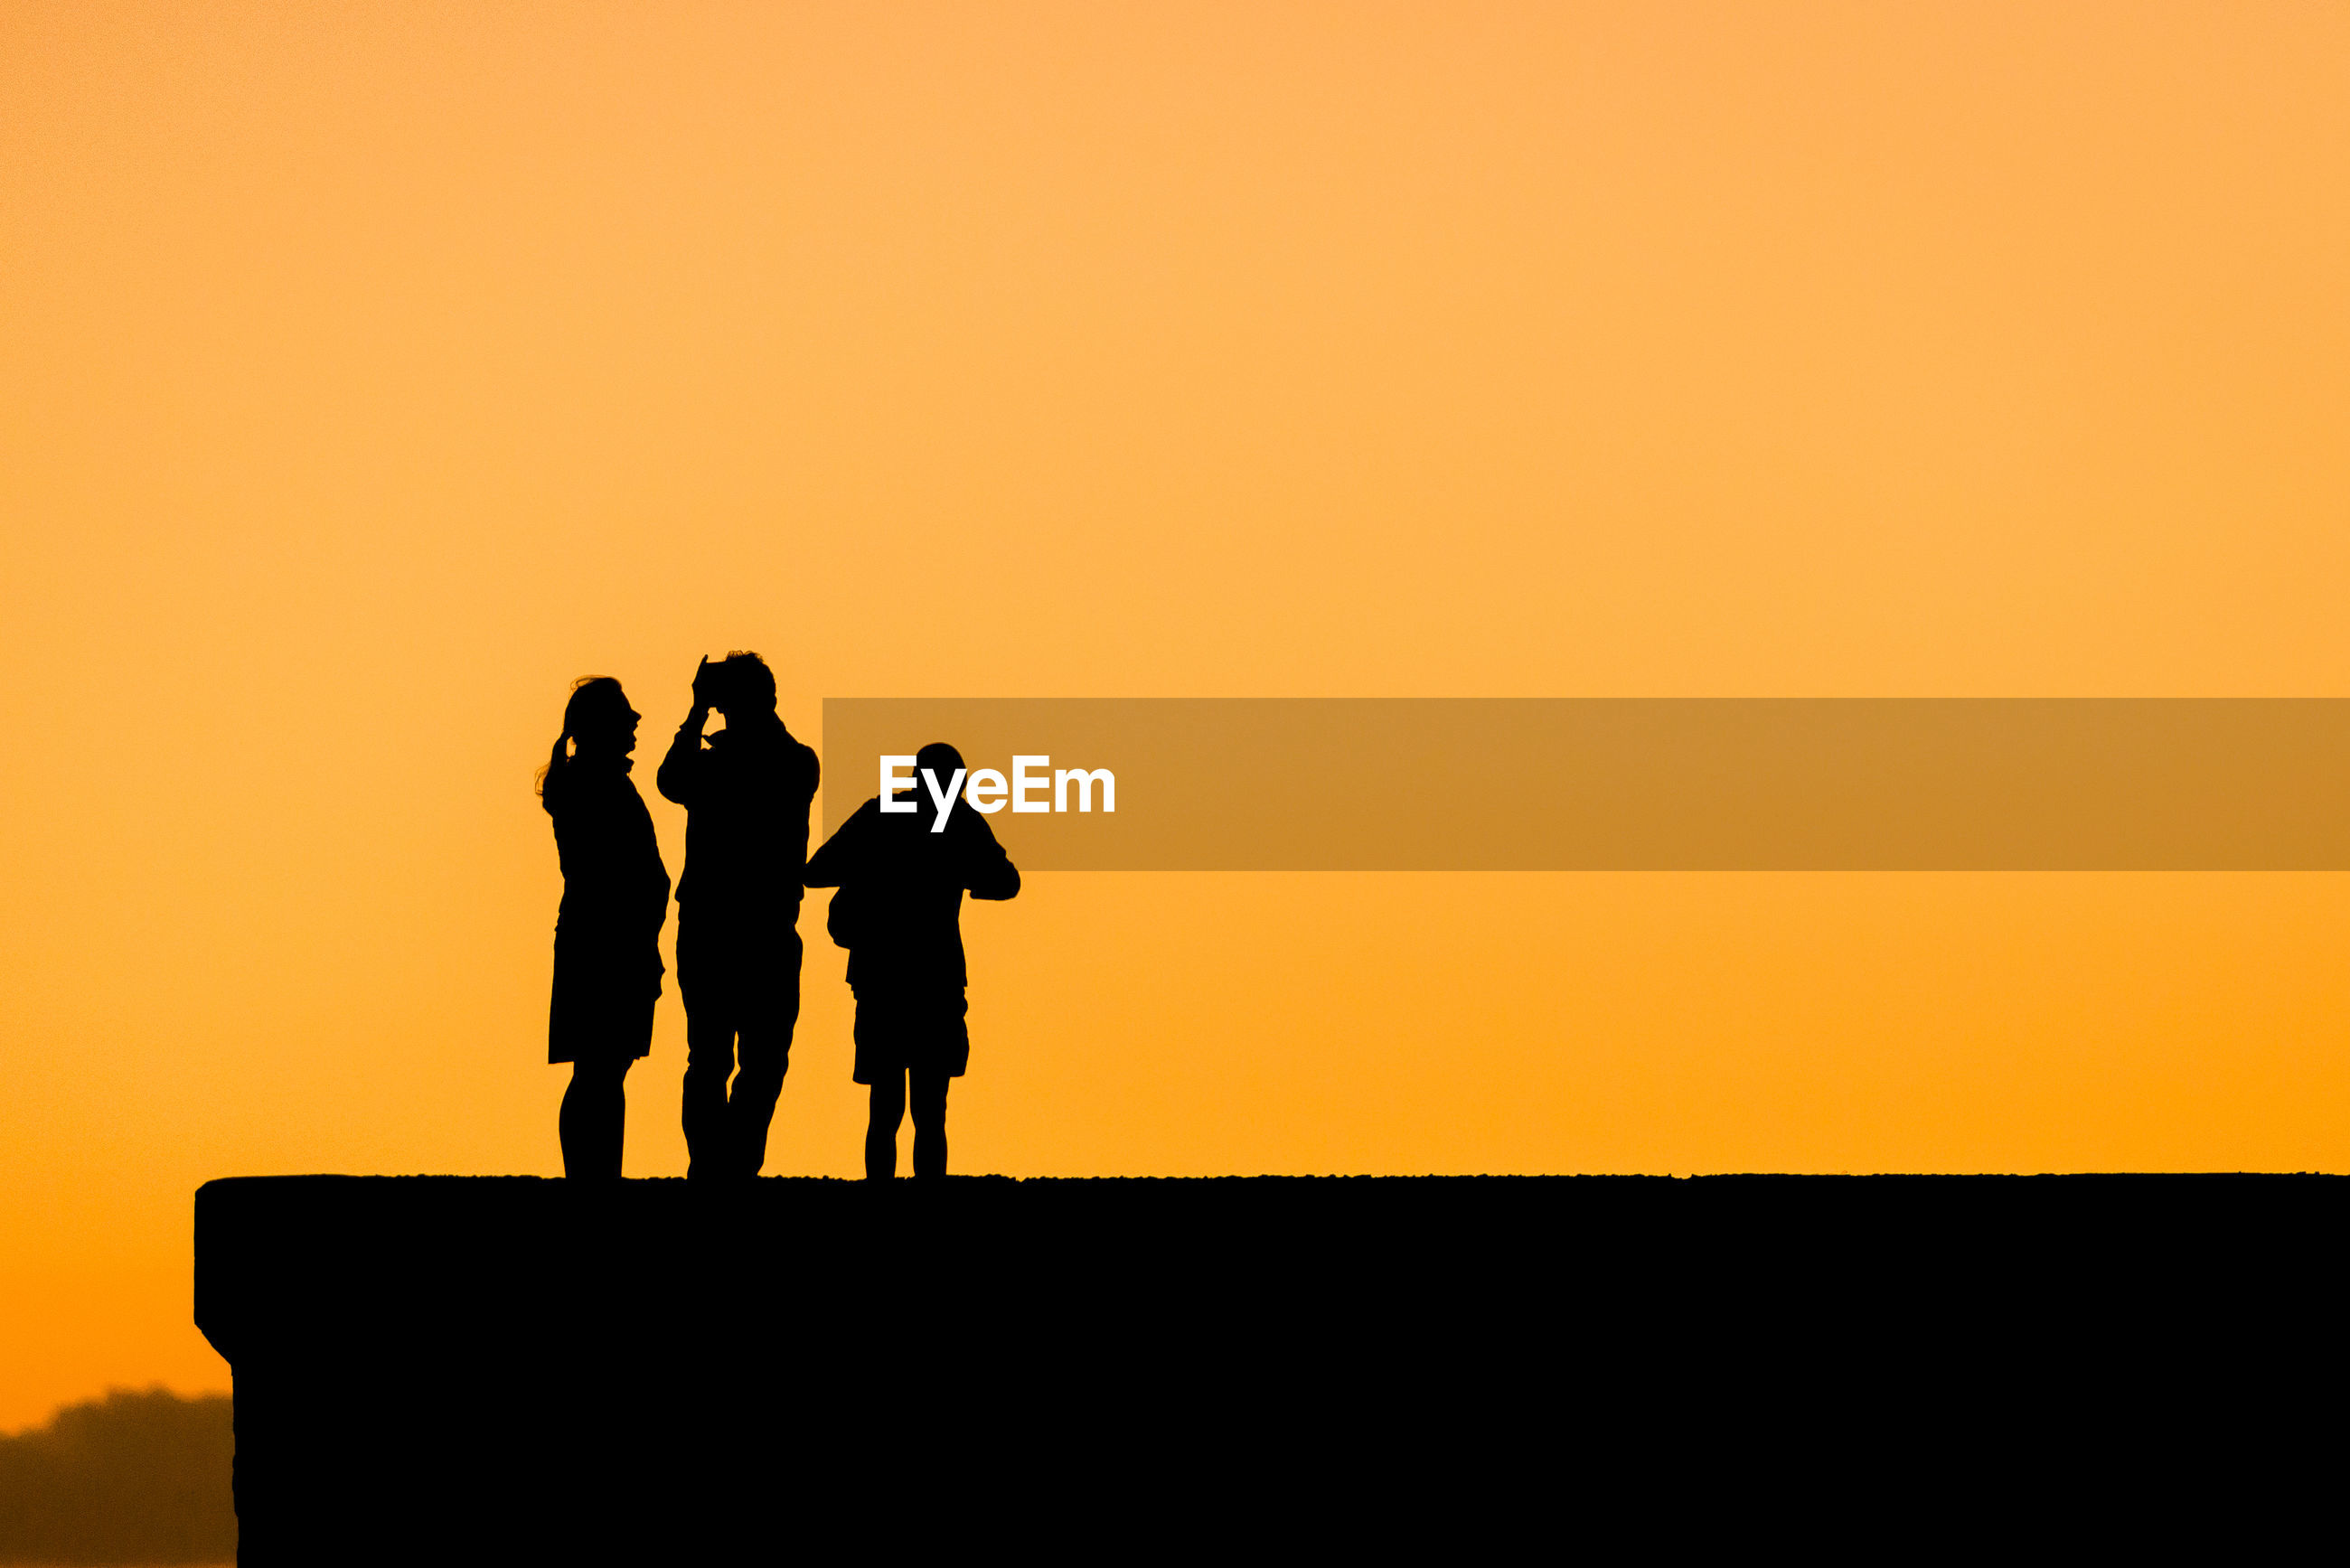 Silhouette people standing against clear sky during sunset